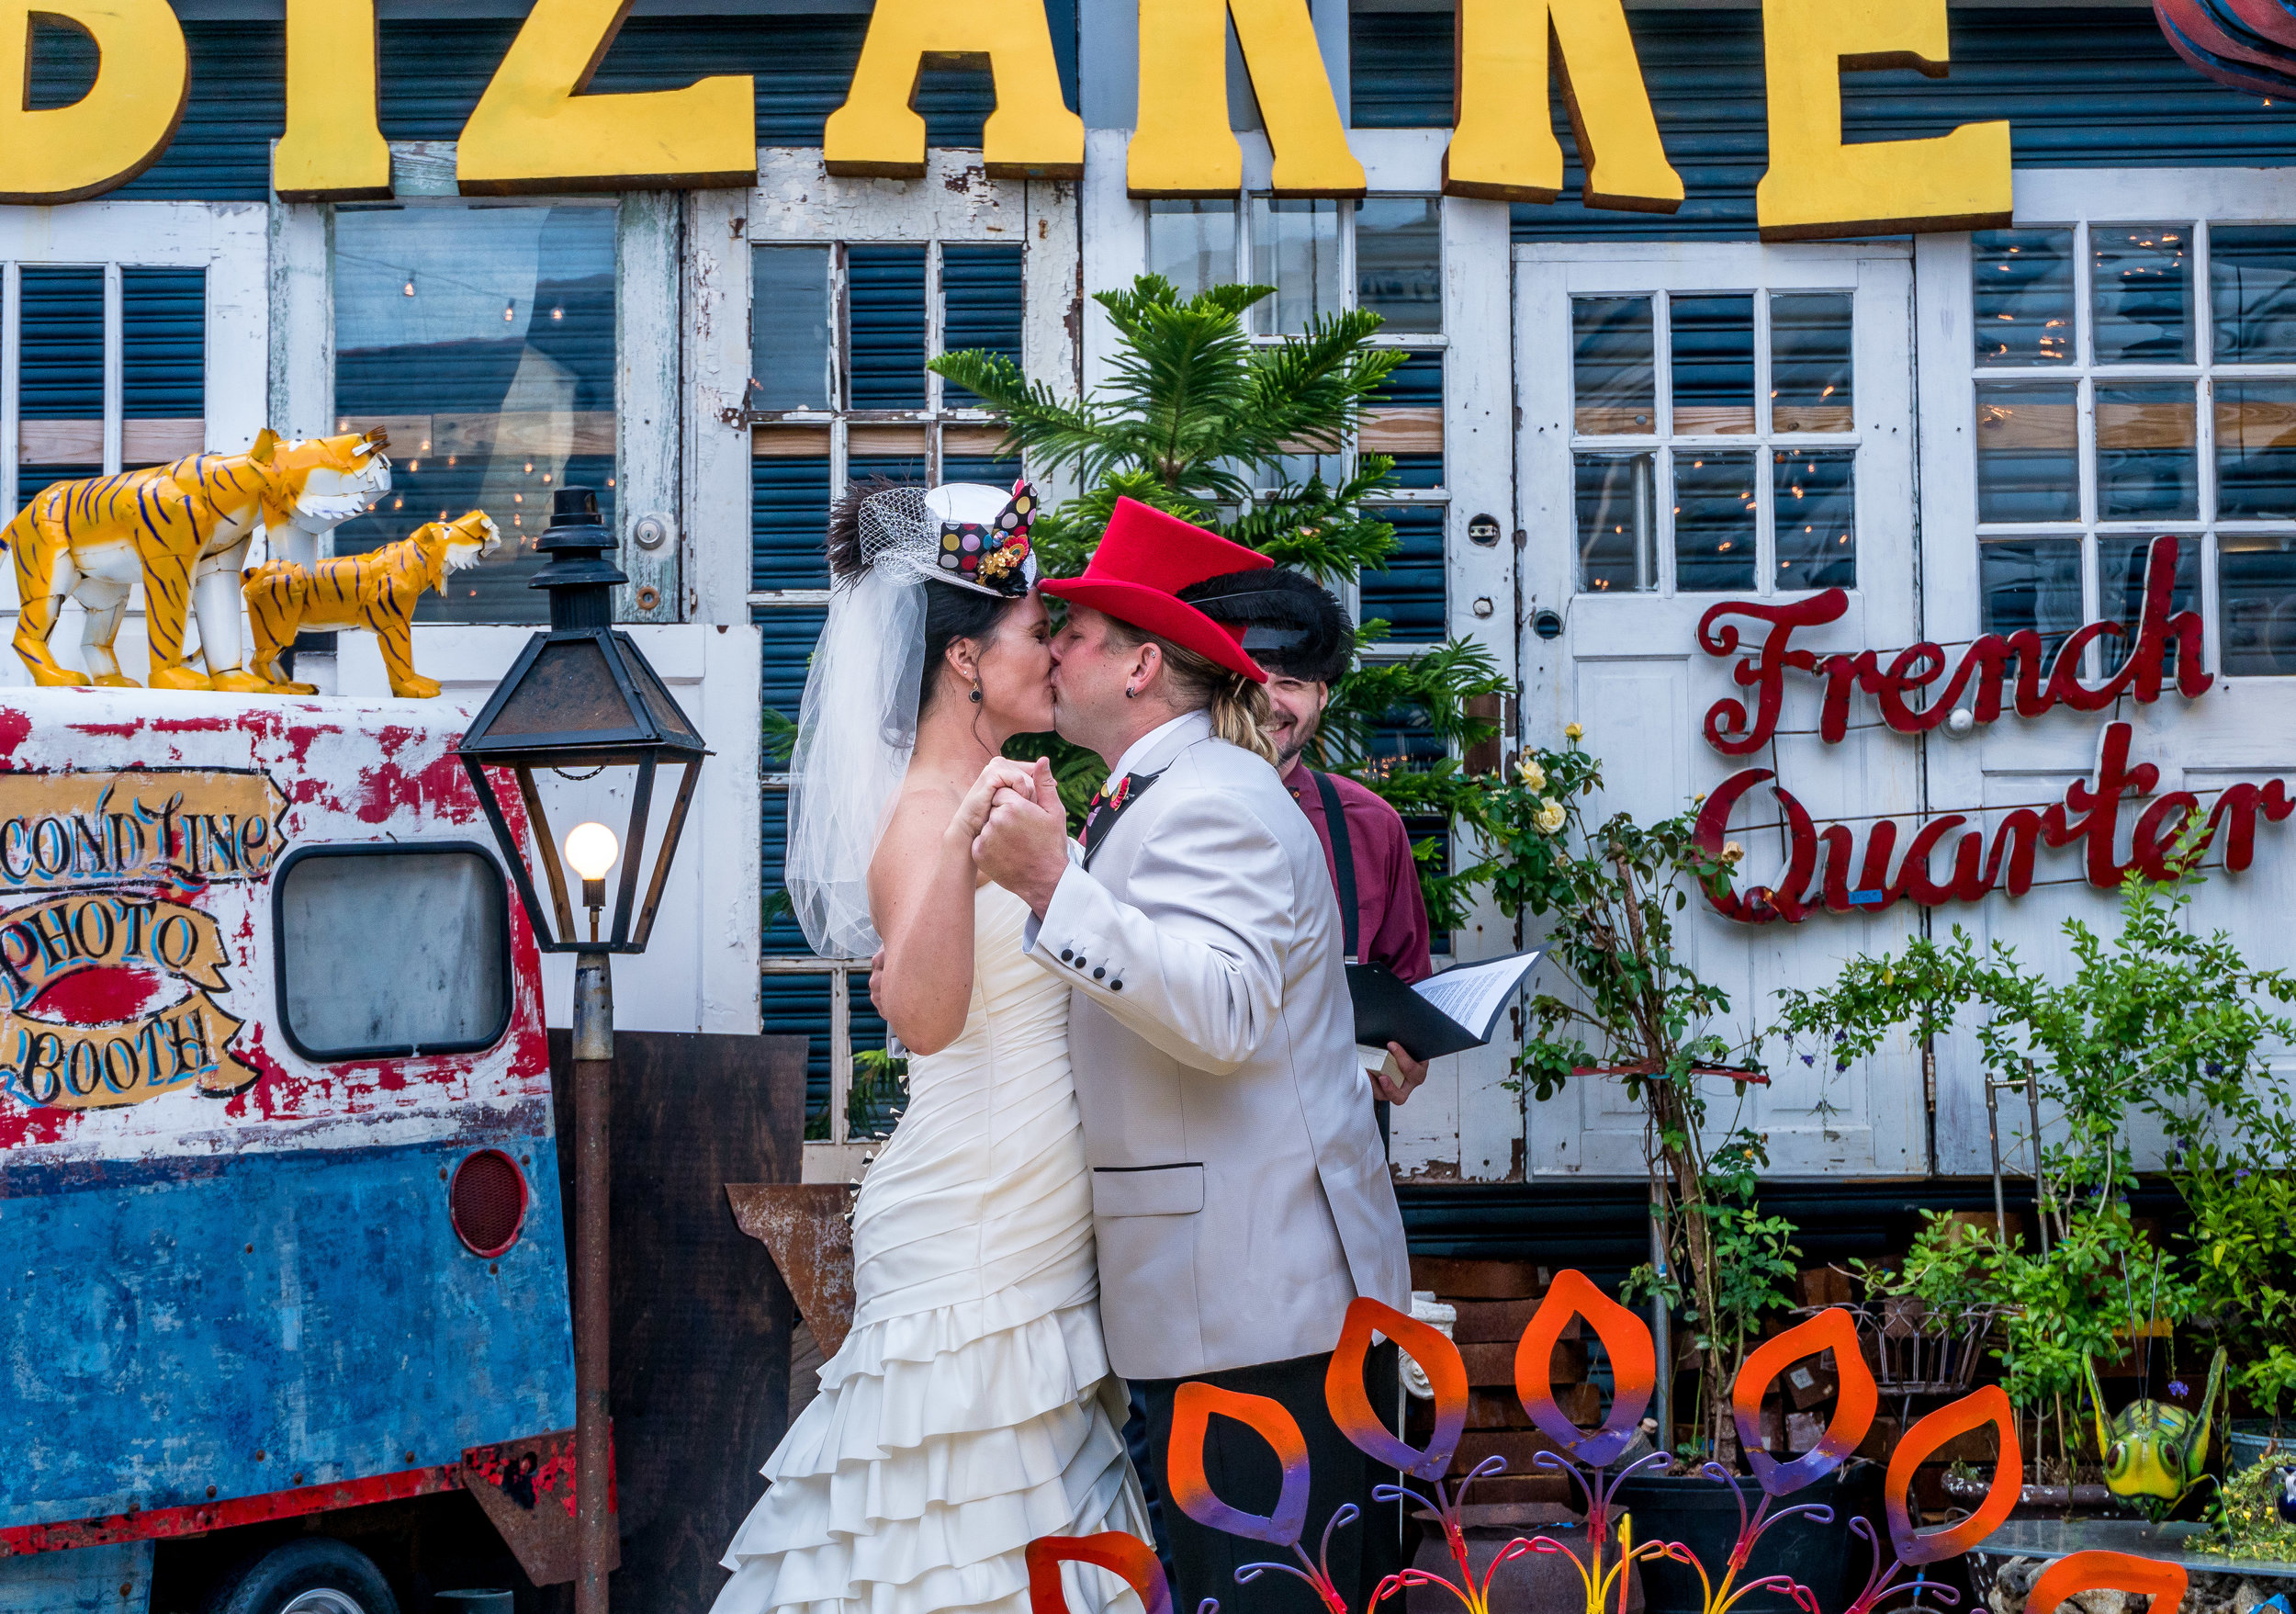 adam cotton photography image of bride and groom first kiss wedding ceremony with dress and tuxedo in french quarter